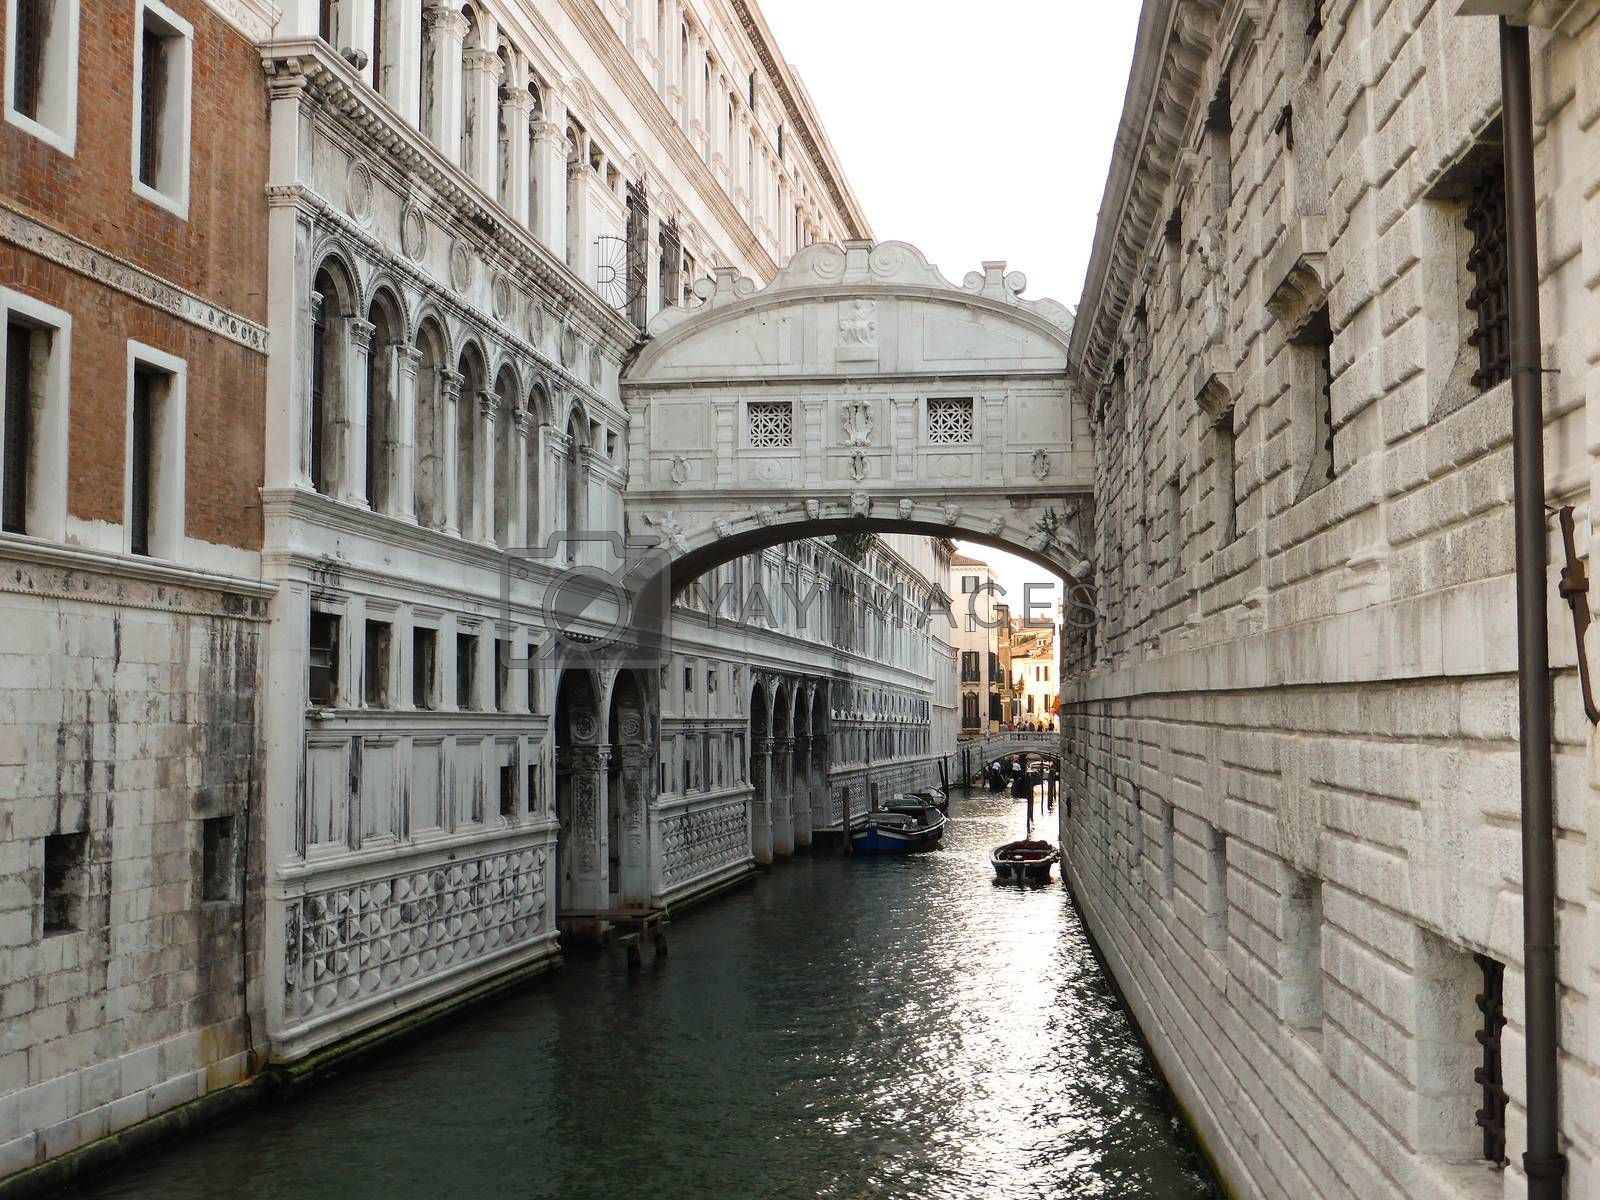 Venice, Italy - July 20, 2013: The Bridge of Sighs in Venice on July 20, 1013. The Bridge of Sighs is one of the most visited attractions in Venice and it was build in 1602.